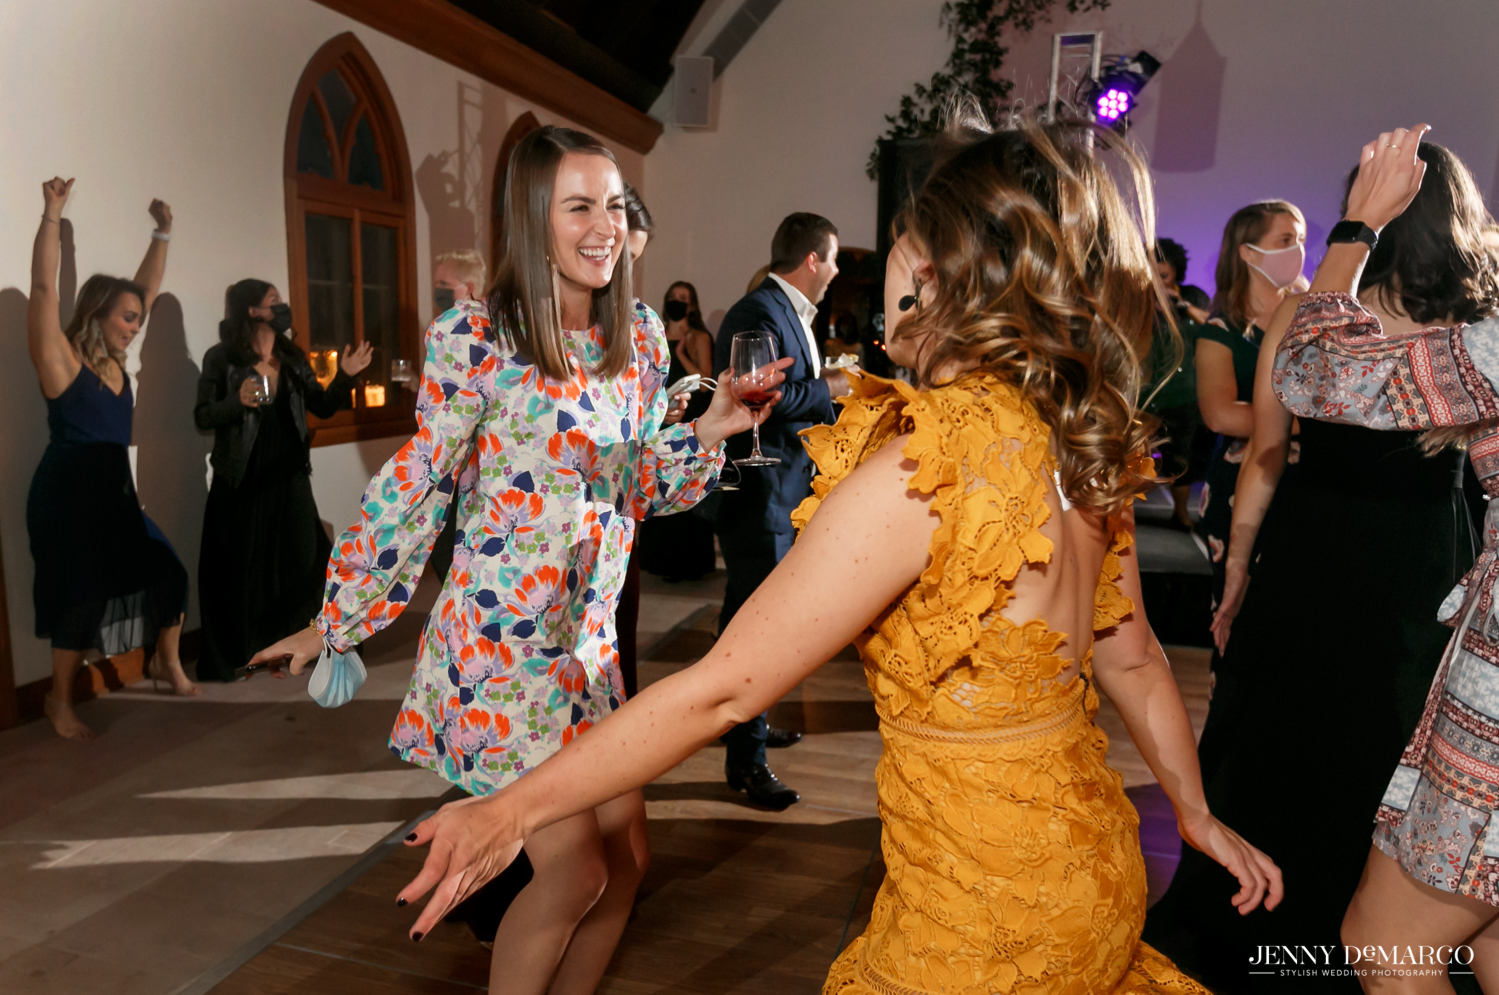 guests dancing and enjoying the wedding celebration